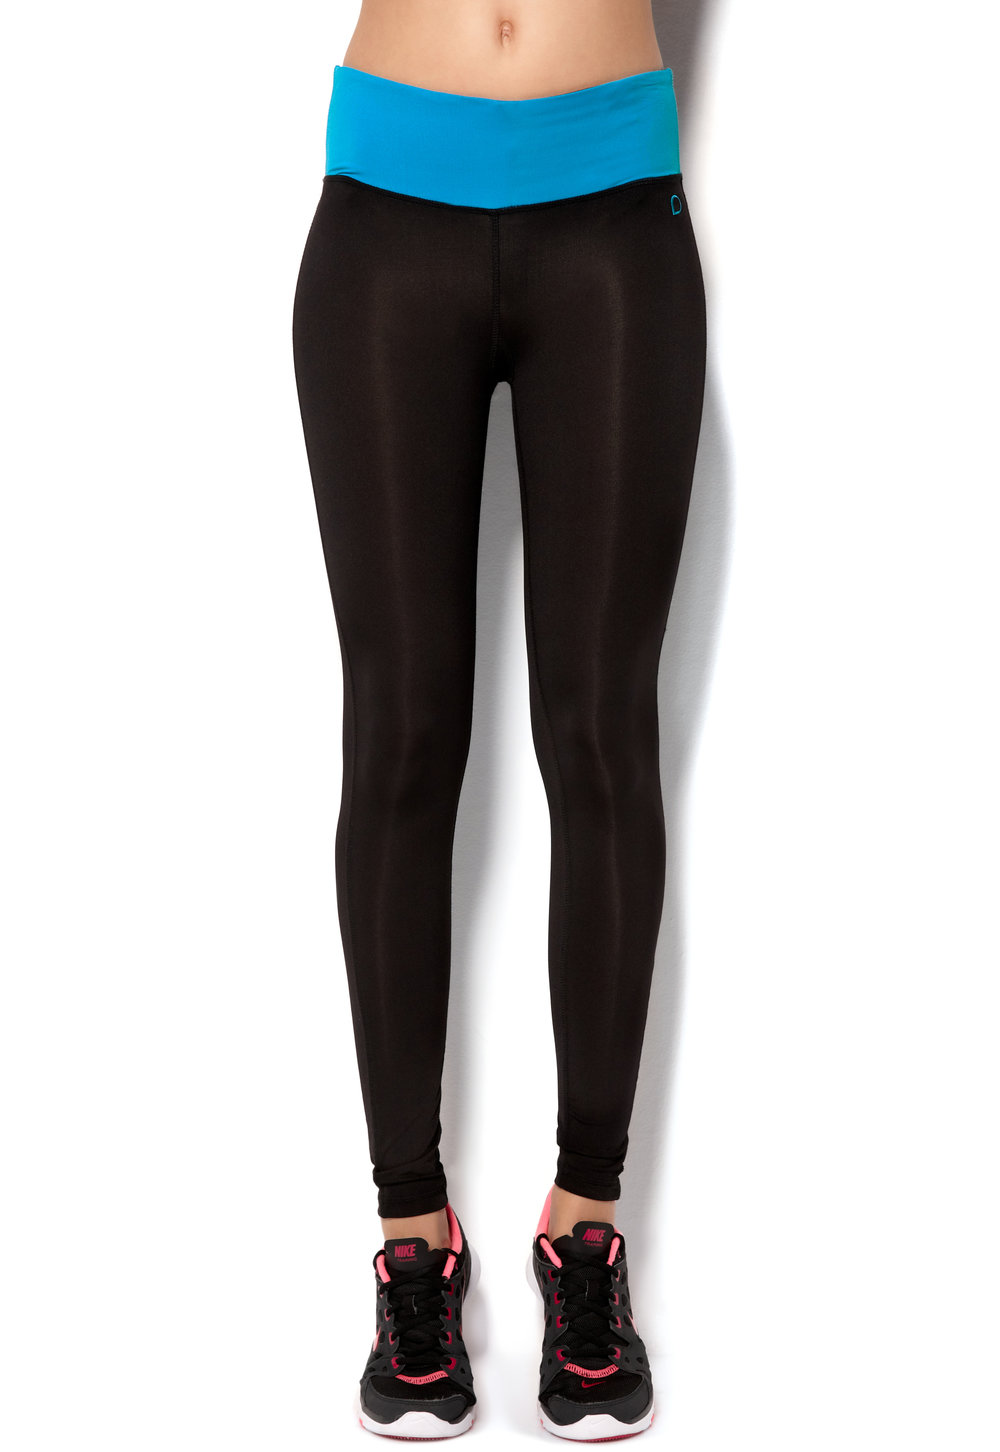 bow-leggings-86544-4d691.jpg